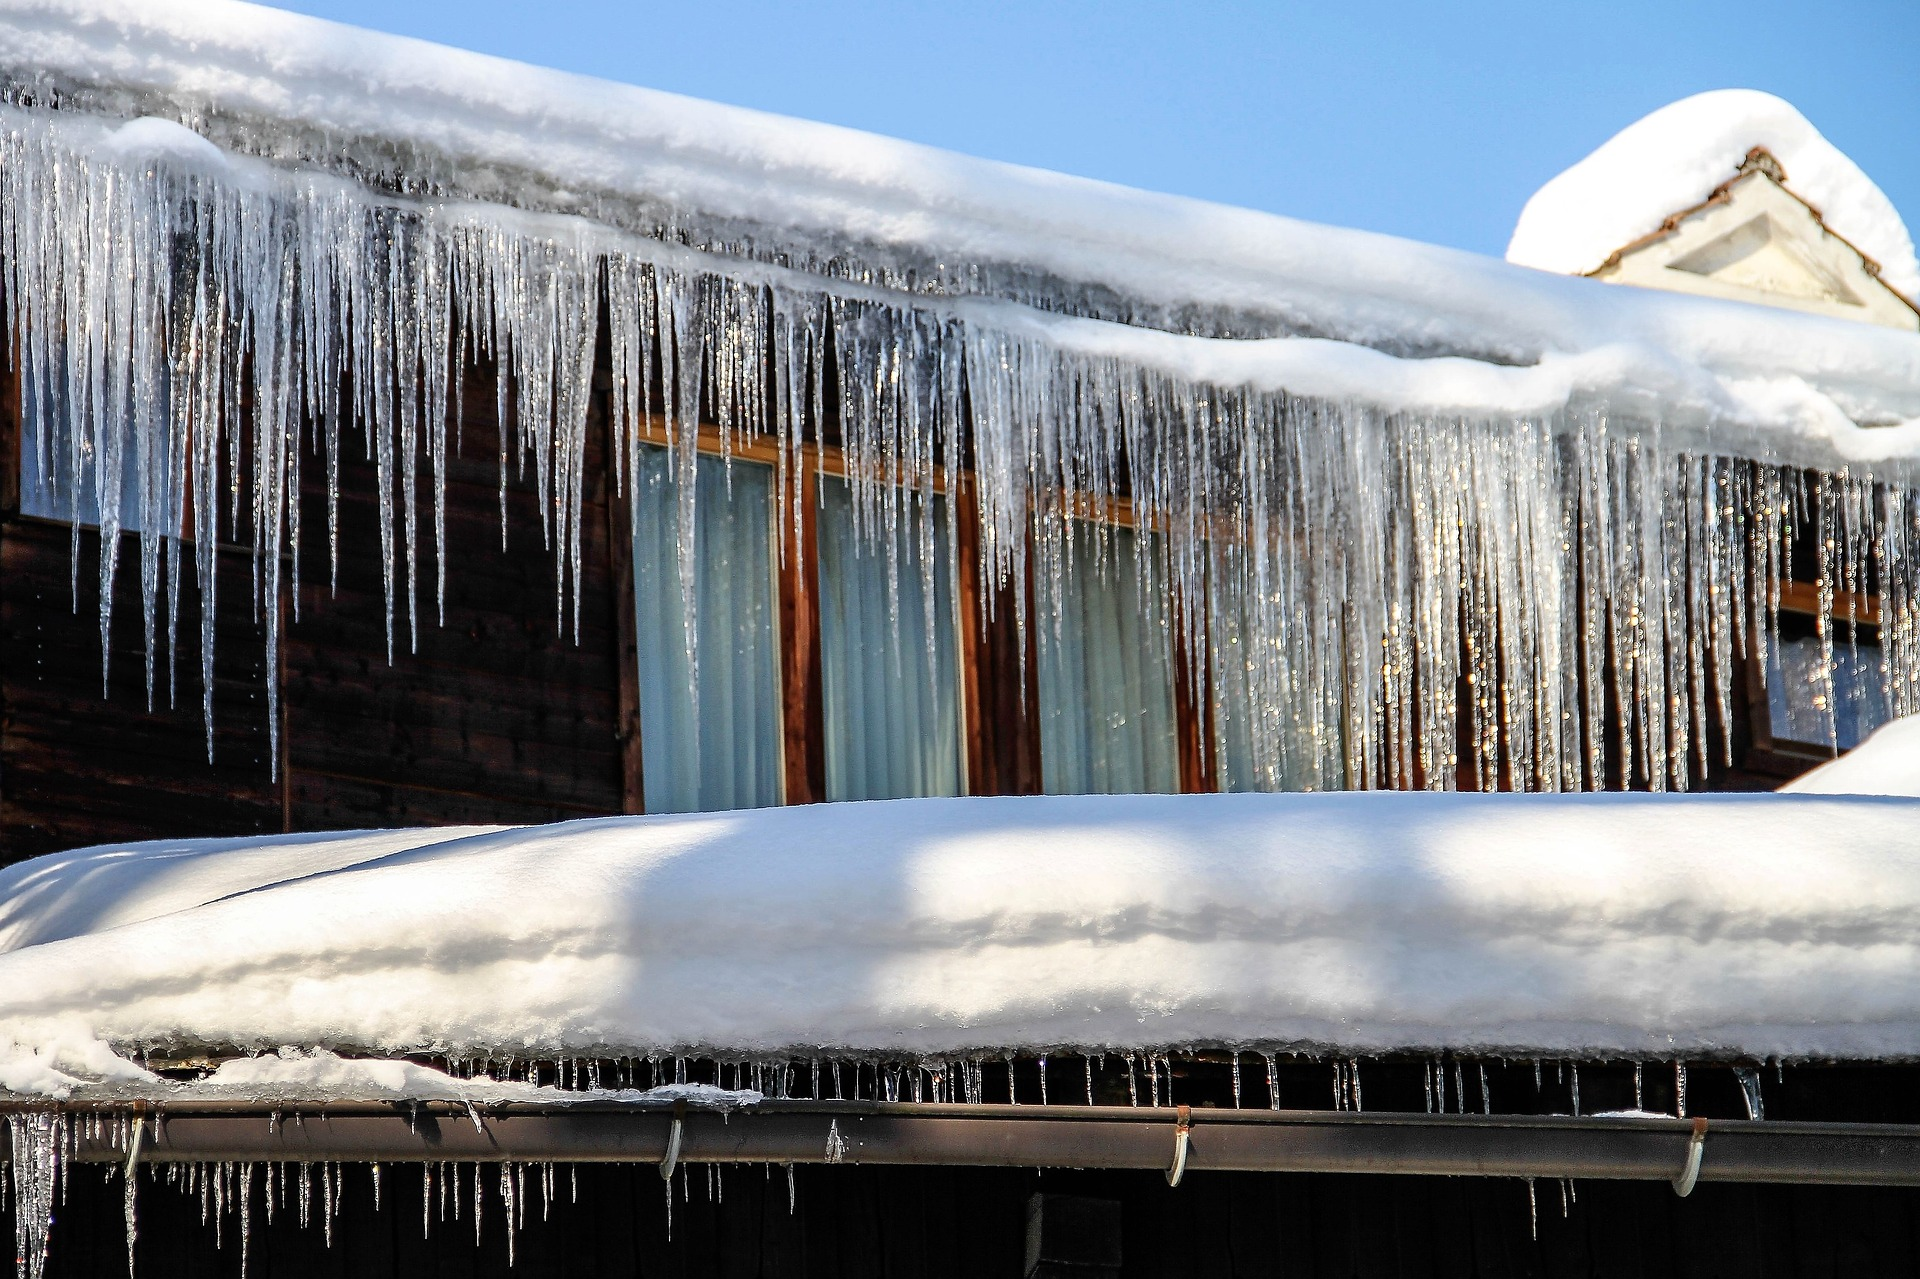 Icicles on Roof Winter | RoofingContractorPittsburgh.com